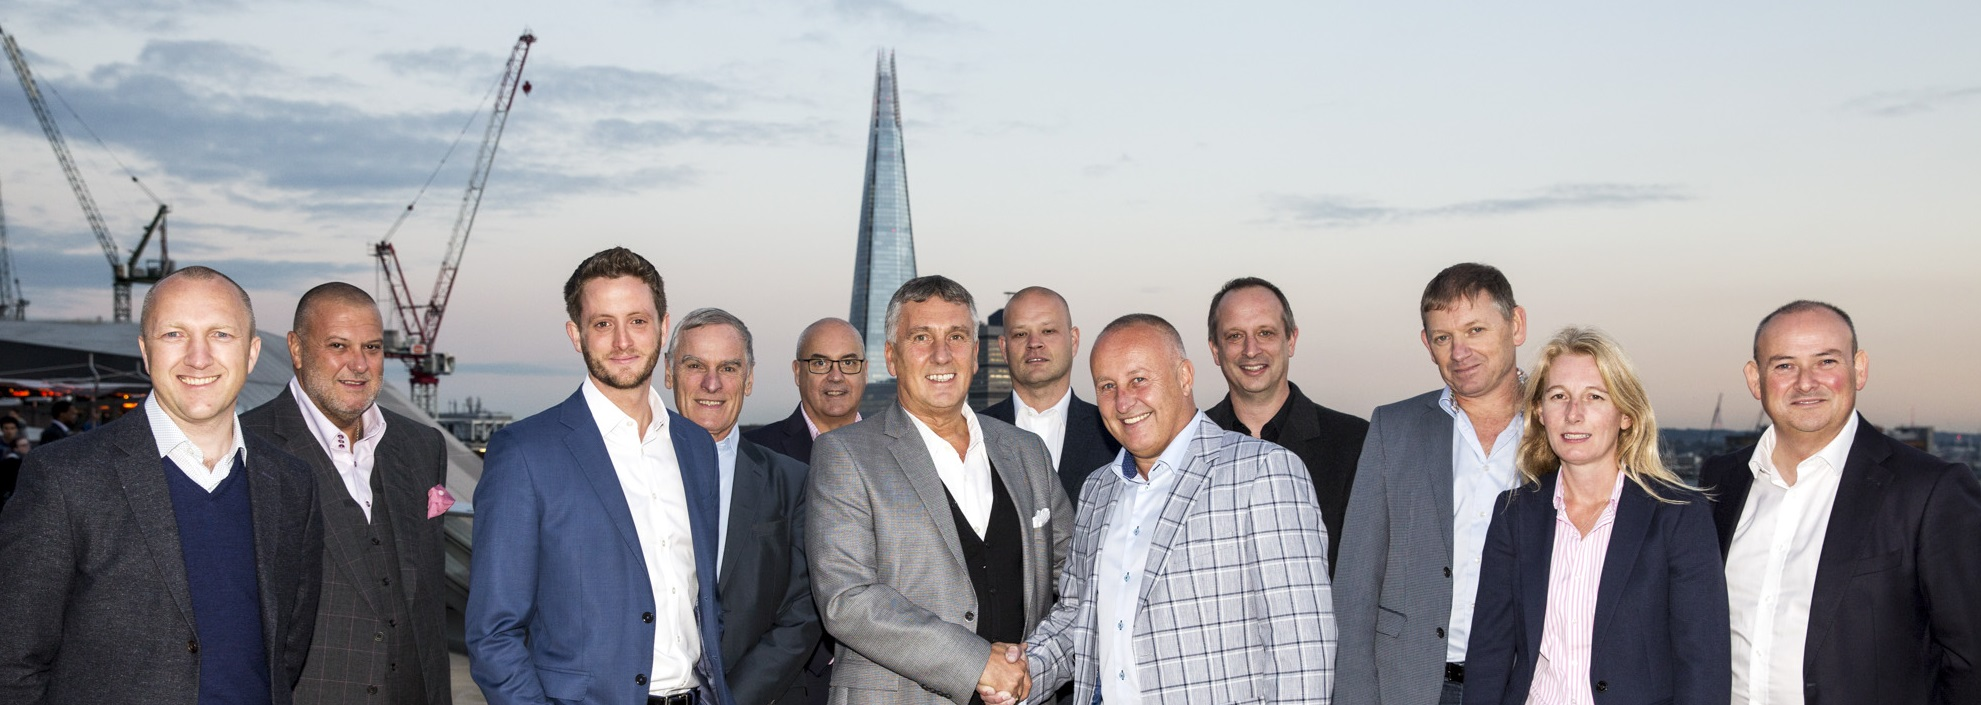 The Delivery Group & P2P Mailing merger